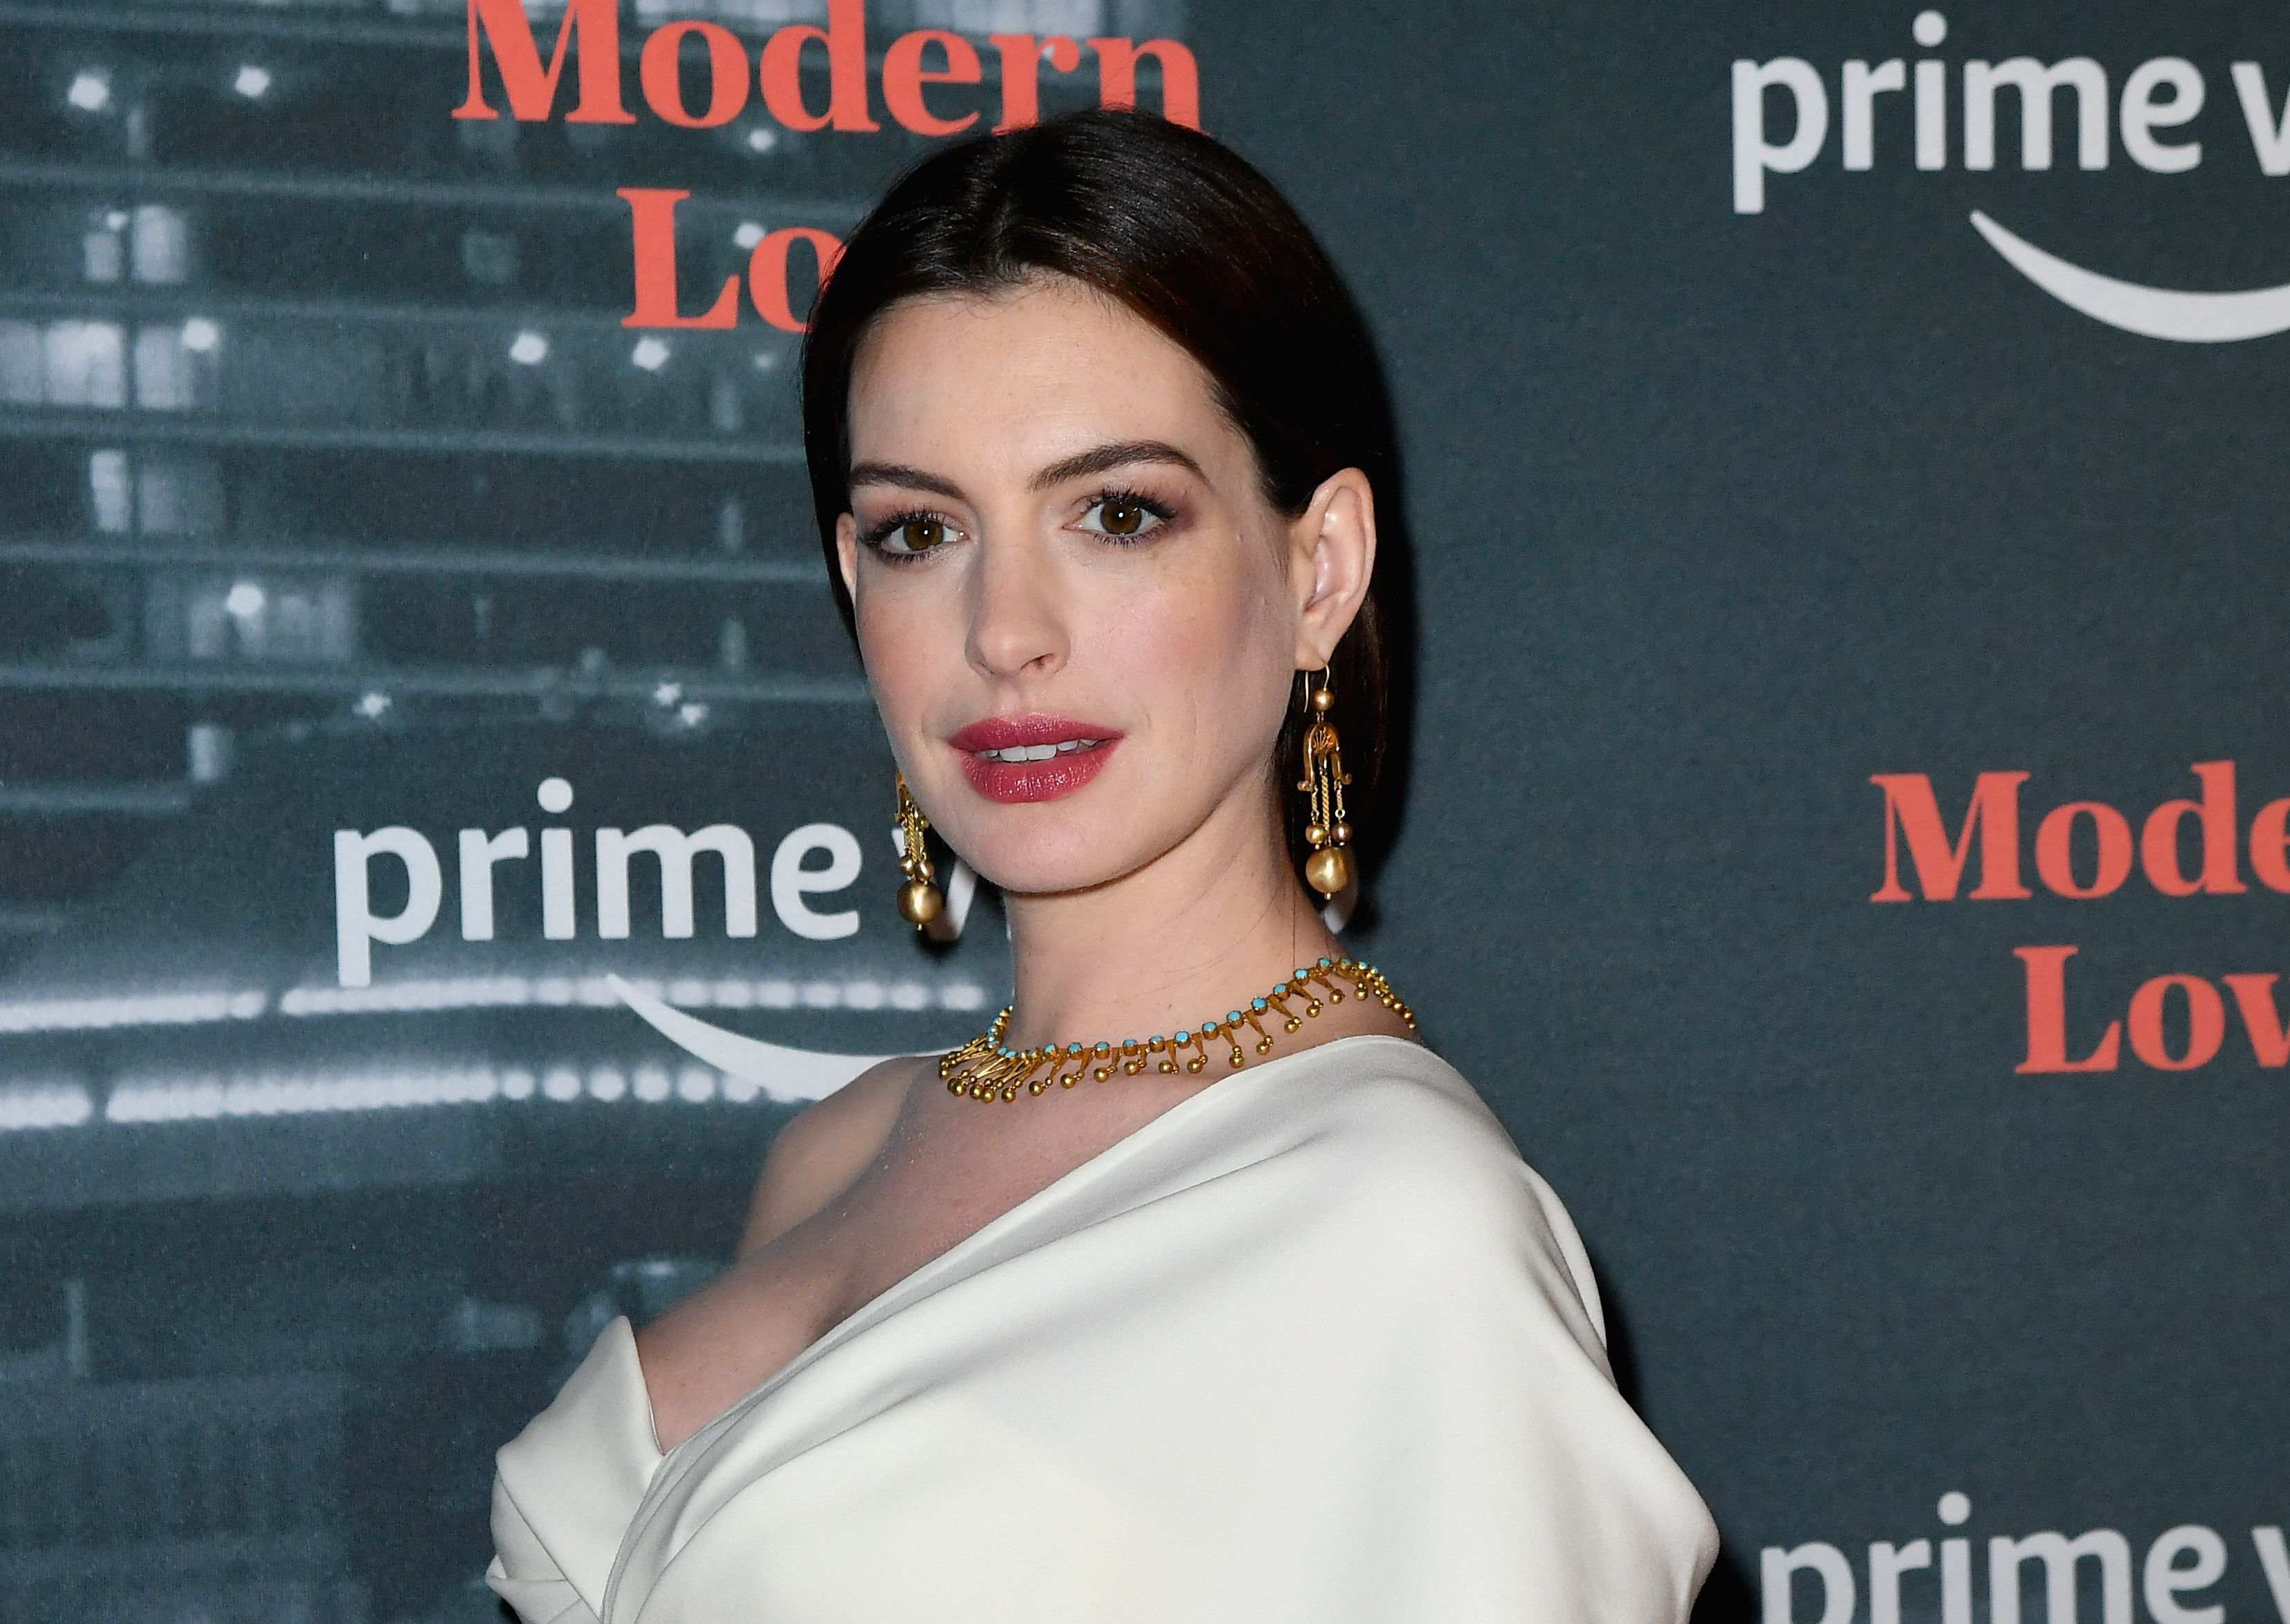 Anne Hathaway's Fashion Evolution, From 2001 to Now